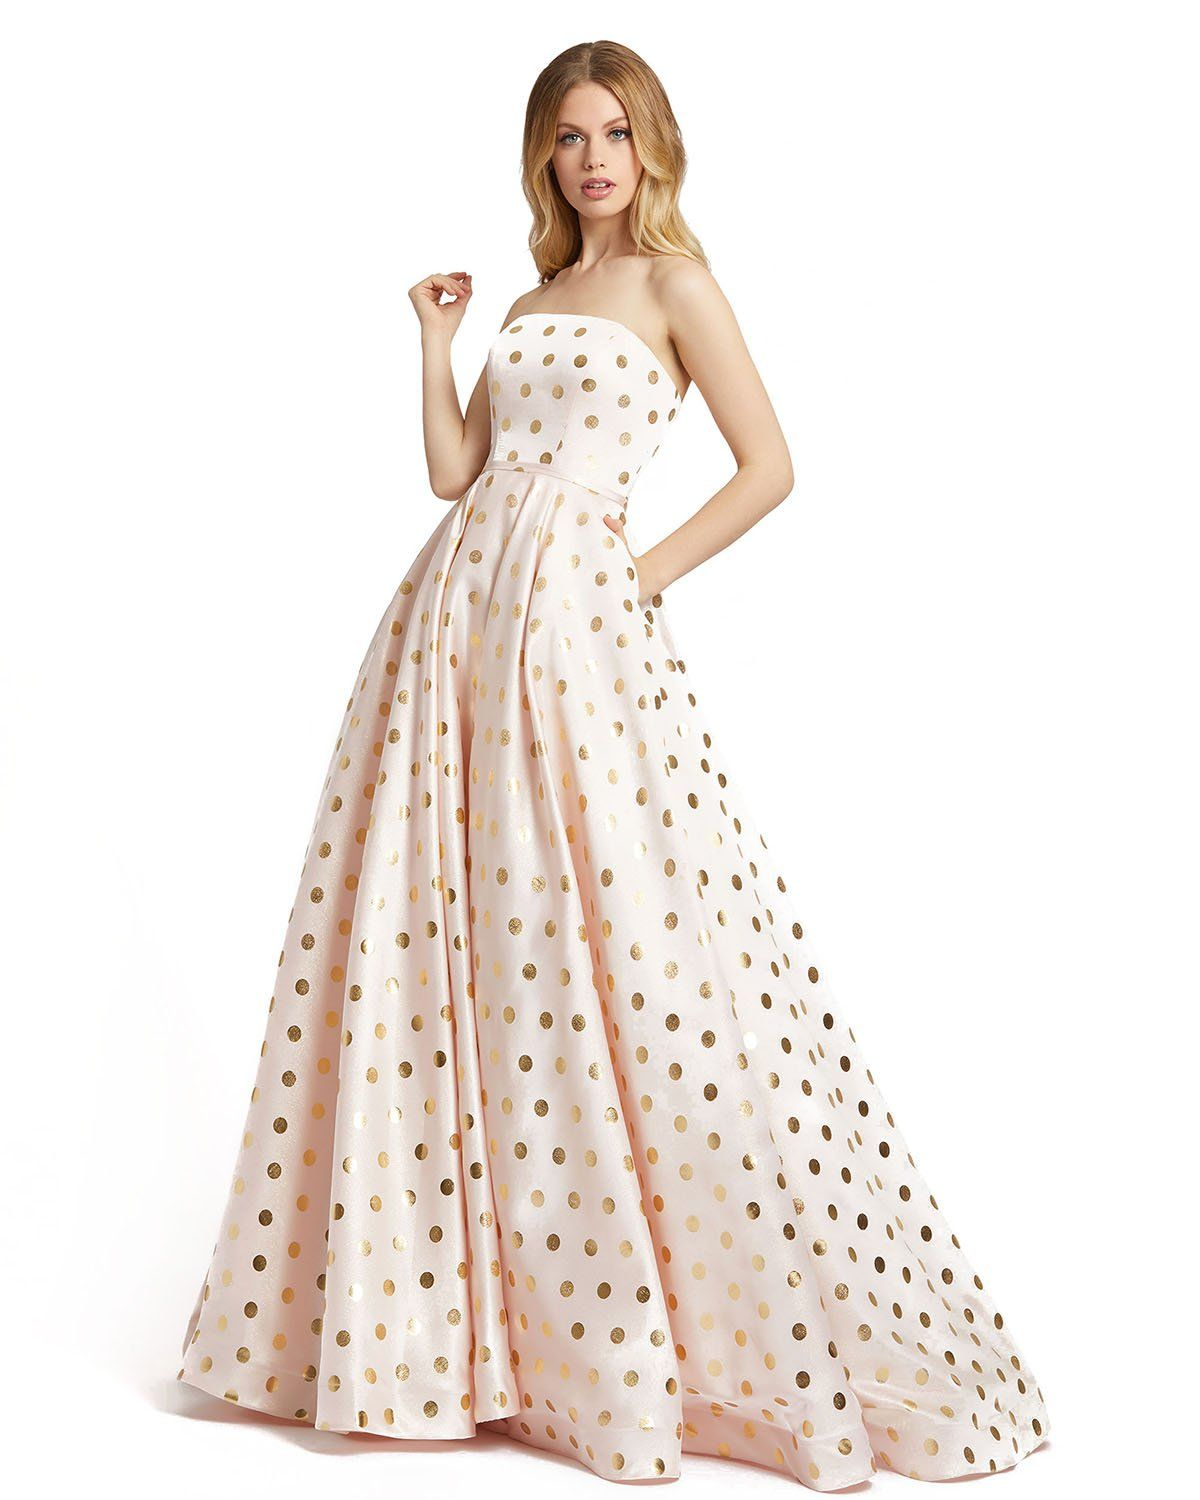 Light Pink Gown With Gold Polka Dots In 2021 Mac Duggal Prom Dresses Ball Gowns Gowns